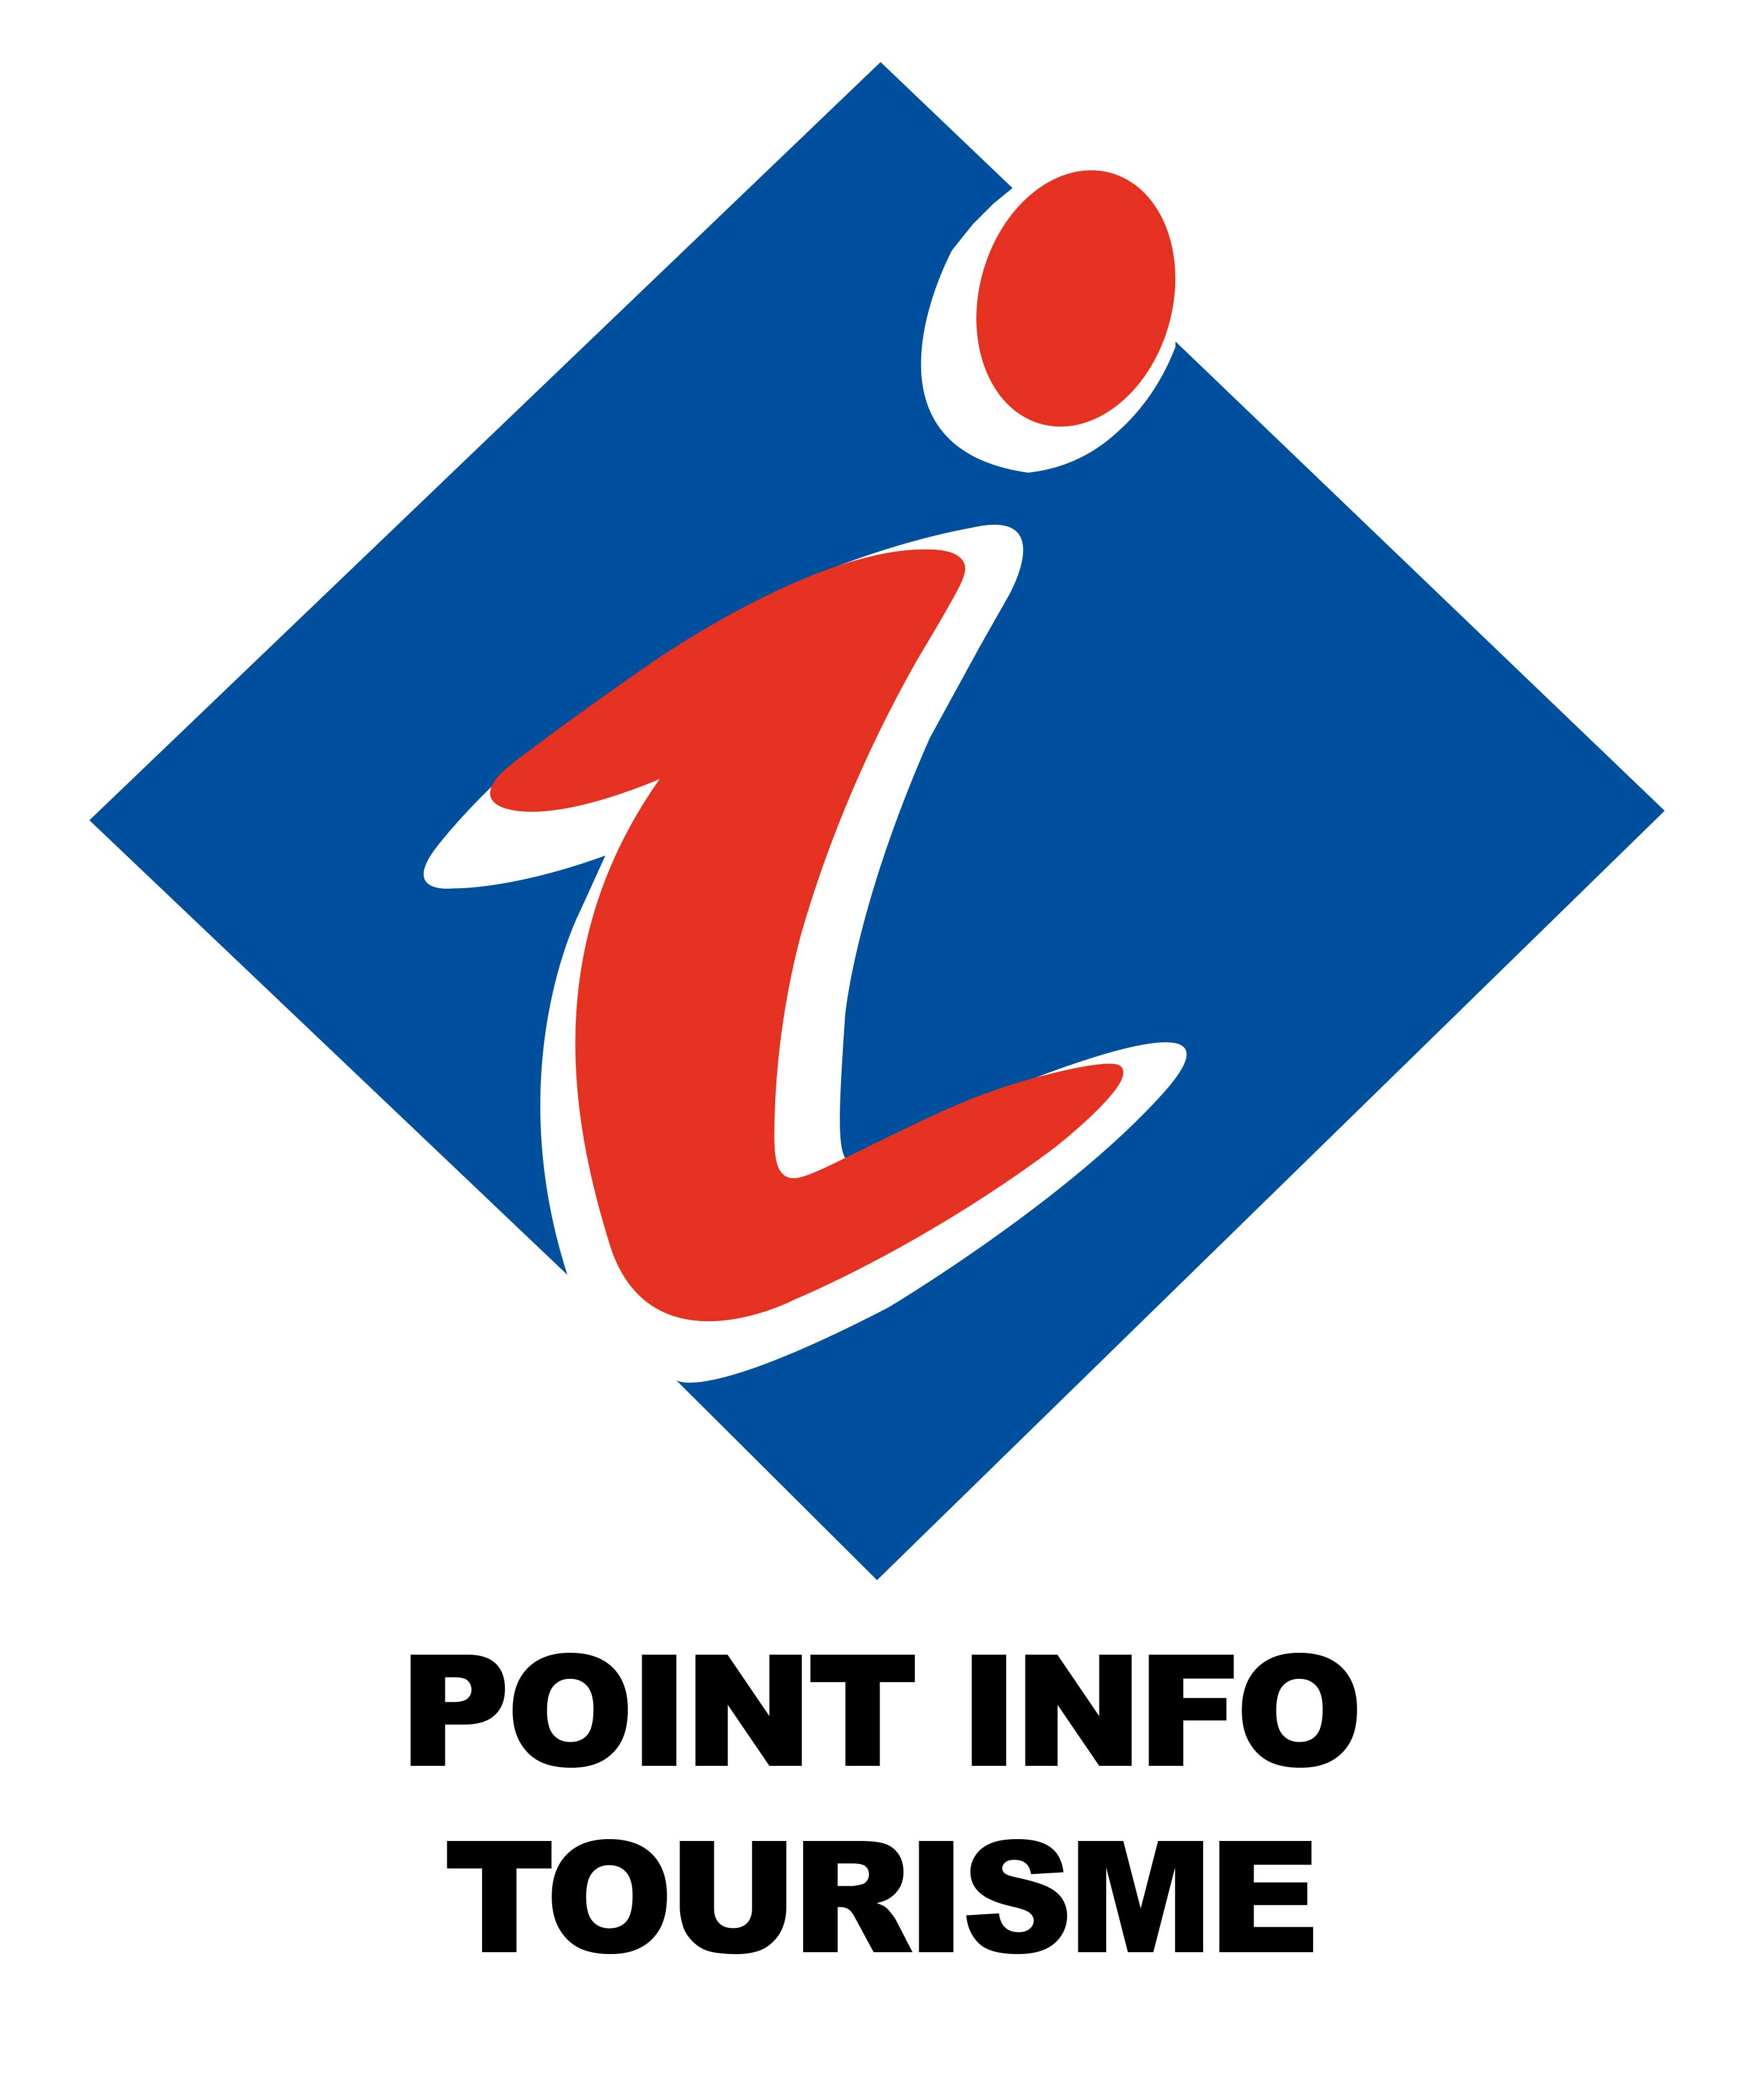 office-de-tourisme-logo-11-fs-2.jpg